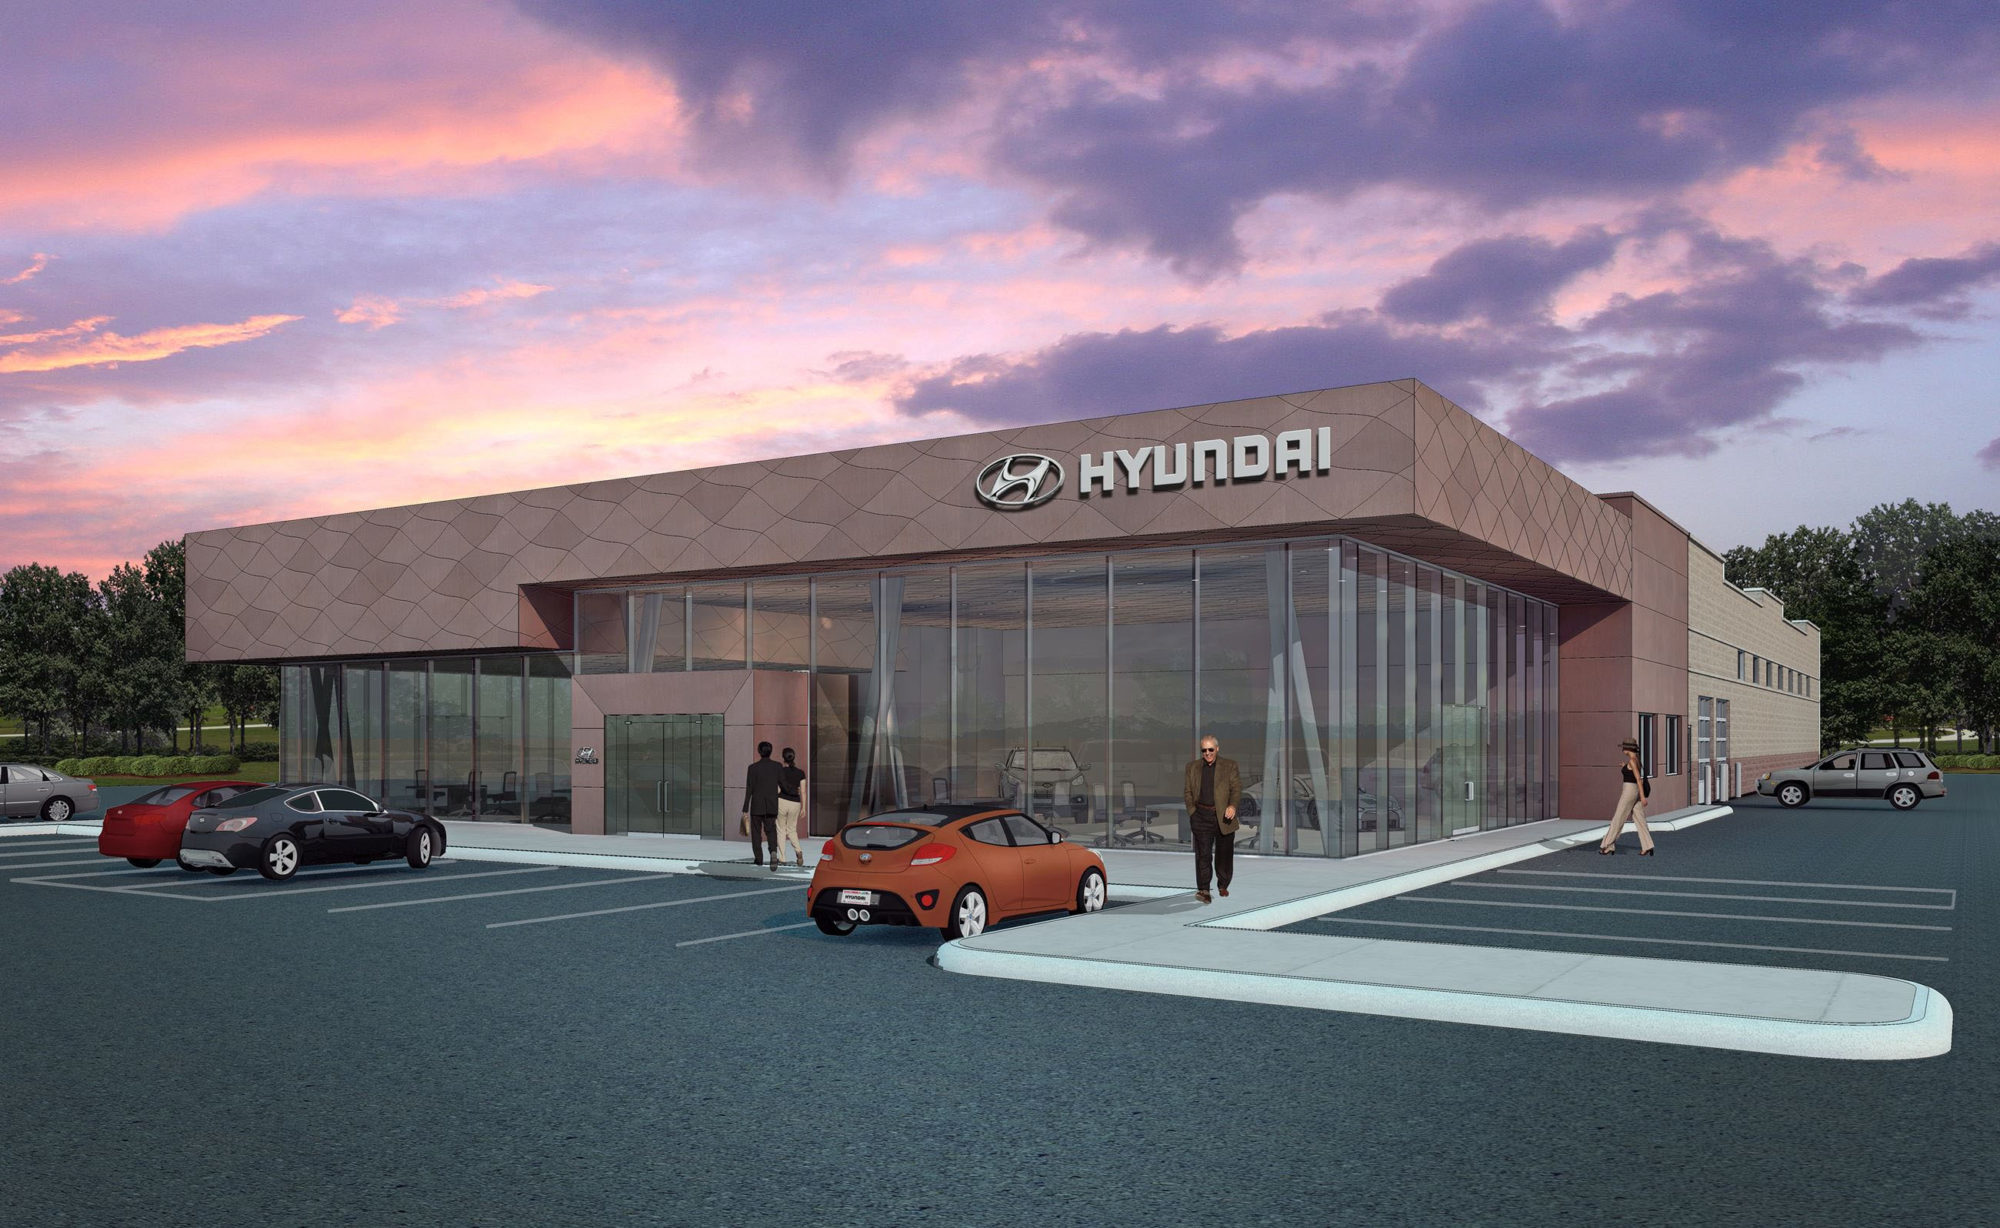 Krausanderson Completes New Hyundai Dealership In Mt. Spinal Fusion Surgery Cost C R E D I T Cards. Schwartz Luggage Storage Hsa Savings Accounts. Online Training Course Software. Website Design Inspirations Tims Auto Parts